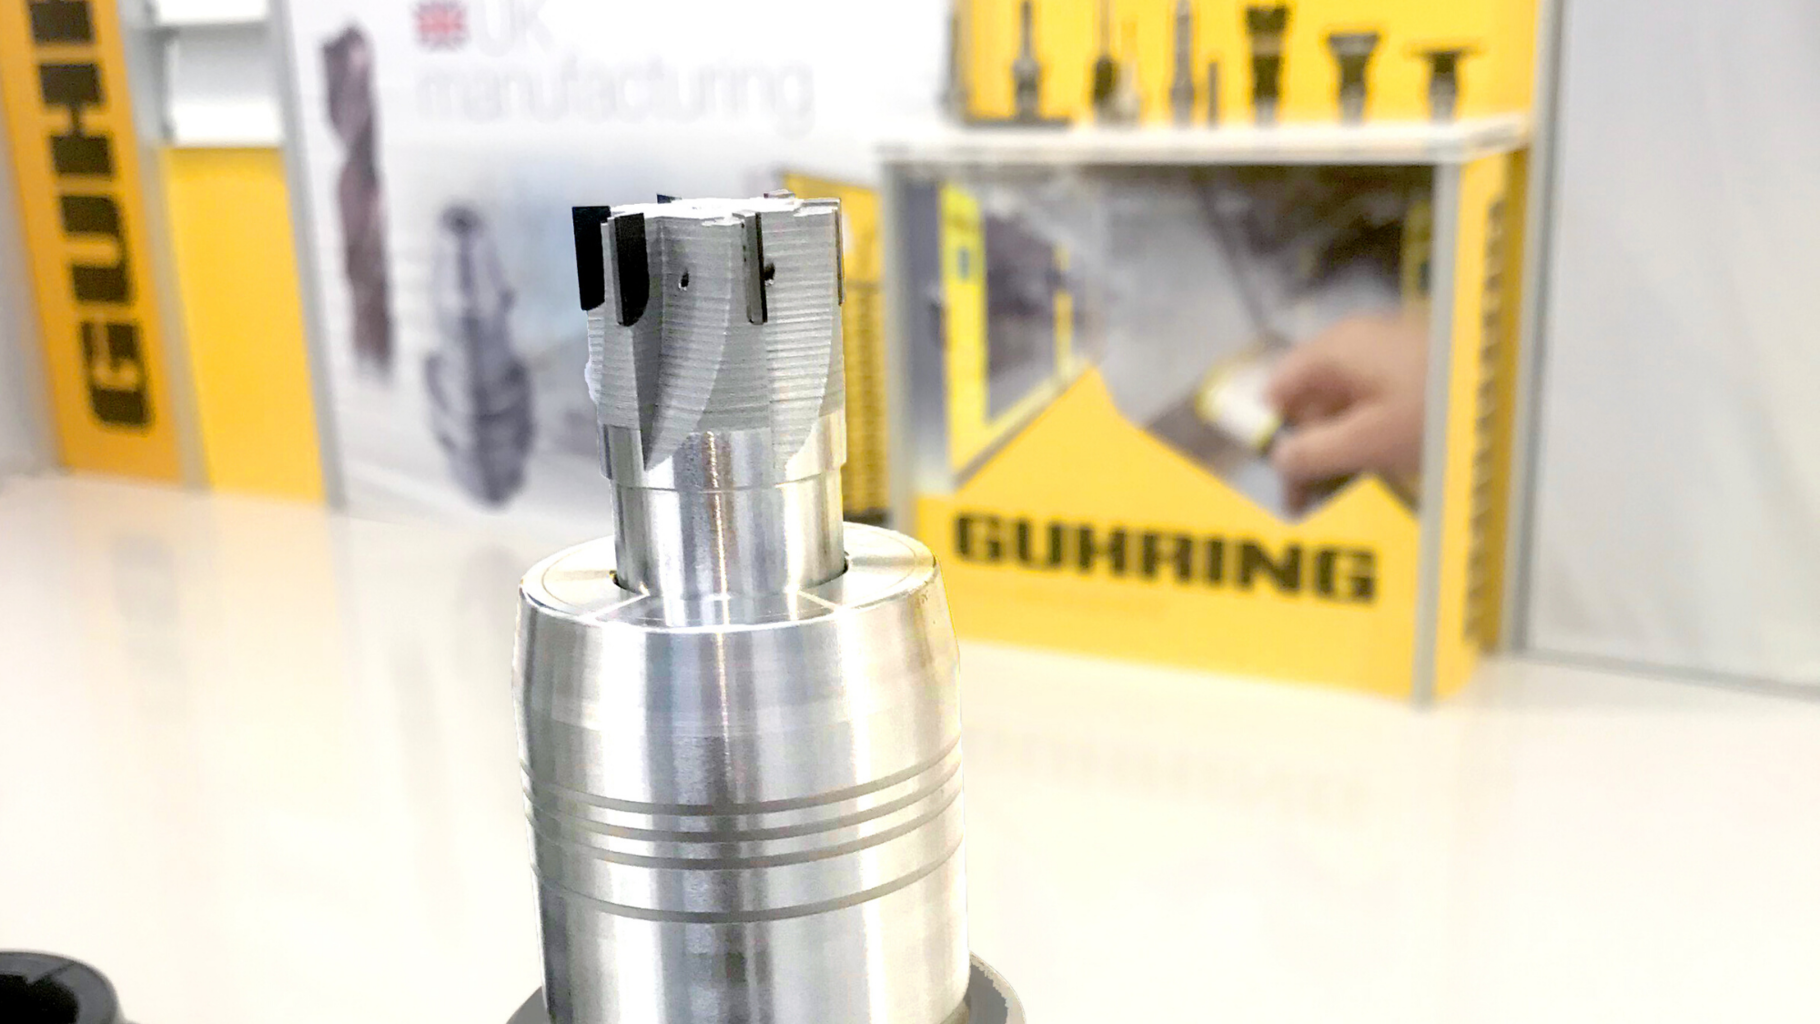 Guhring UK has sent metal 3D printed tools to customers to test new concepts. Photo via Markforged.